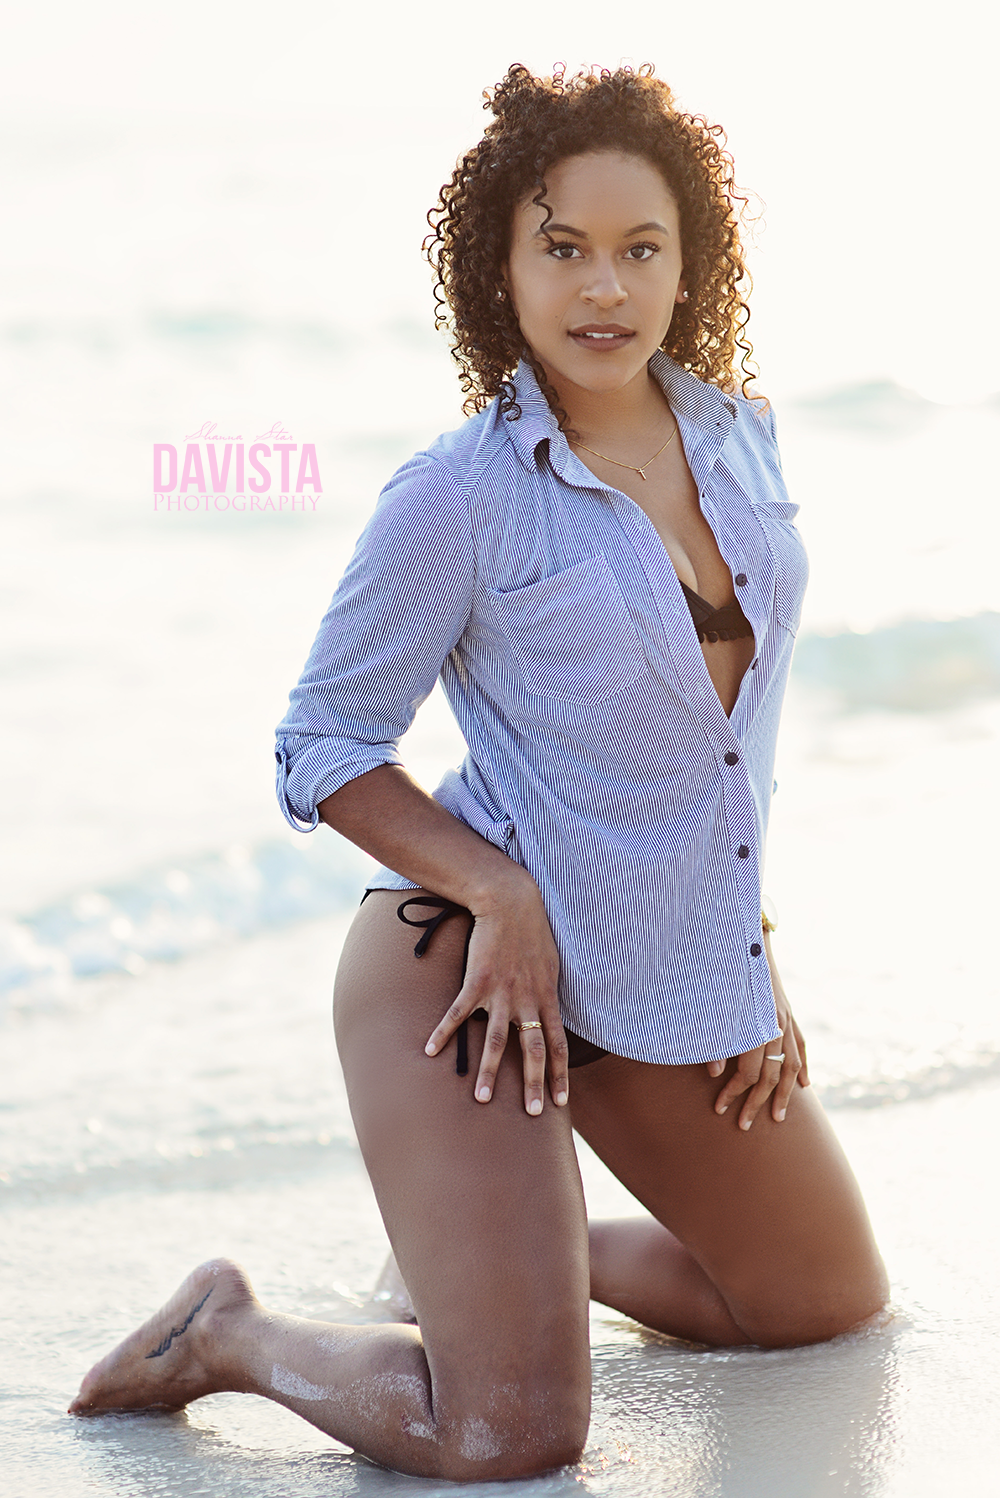 Panama City beach photo session